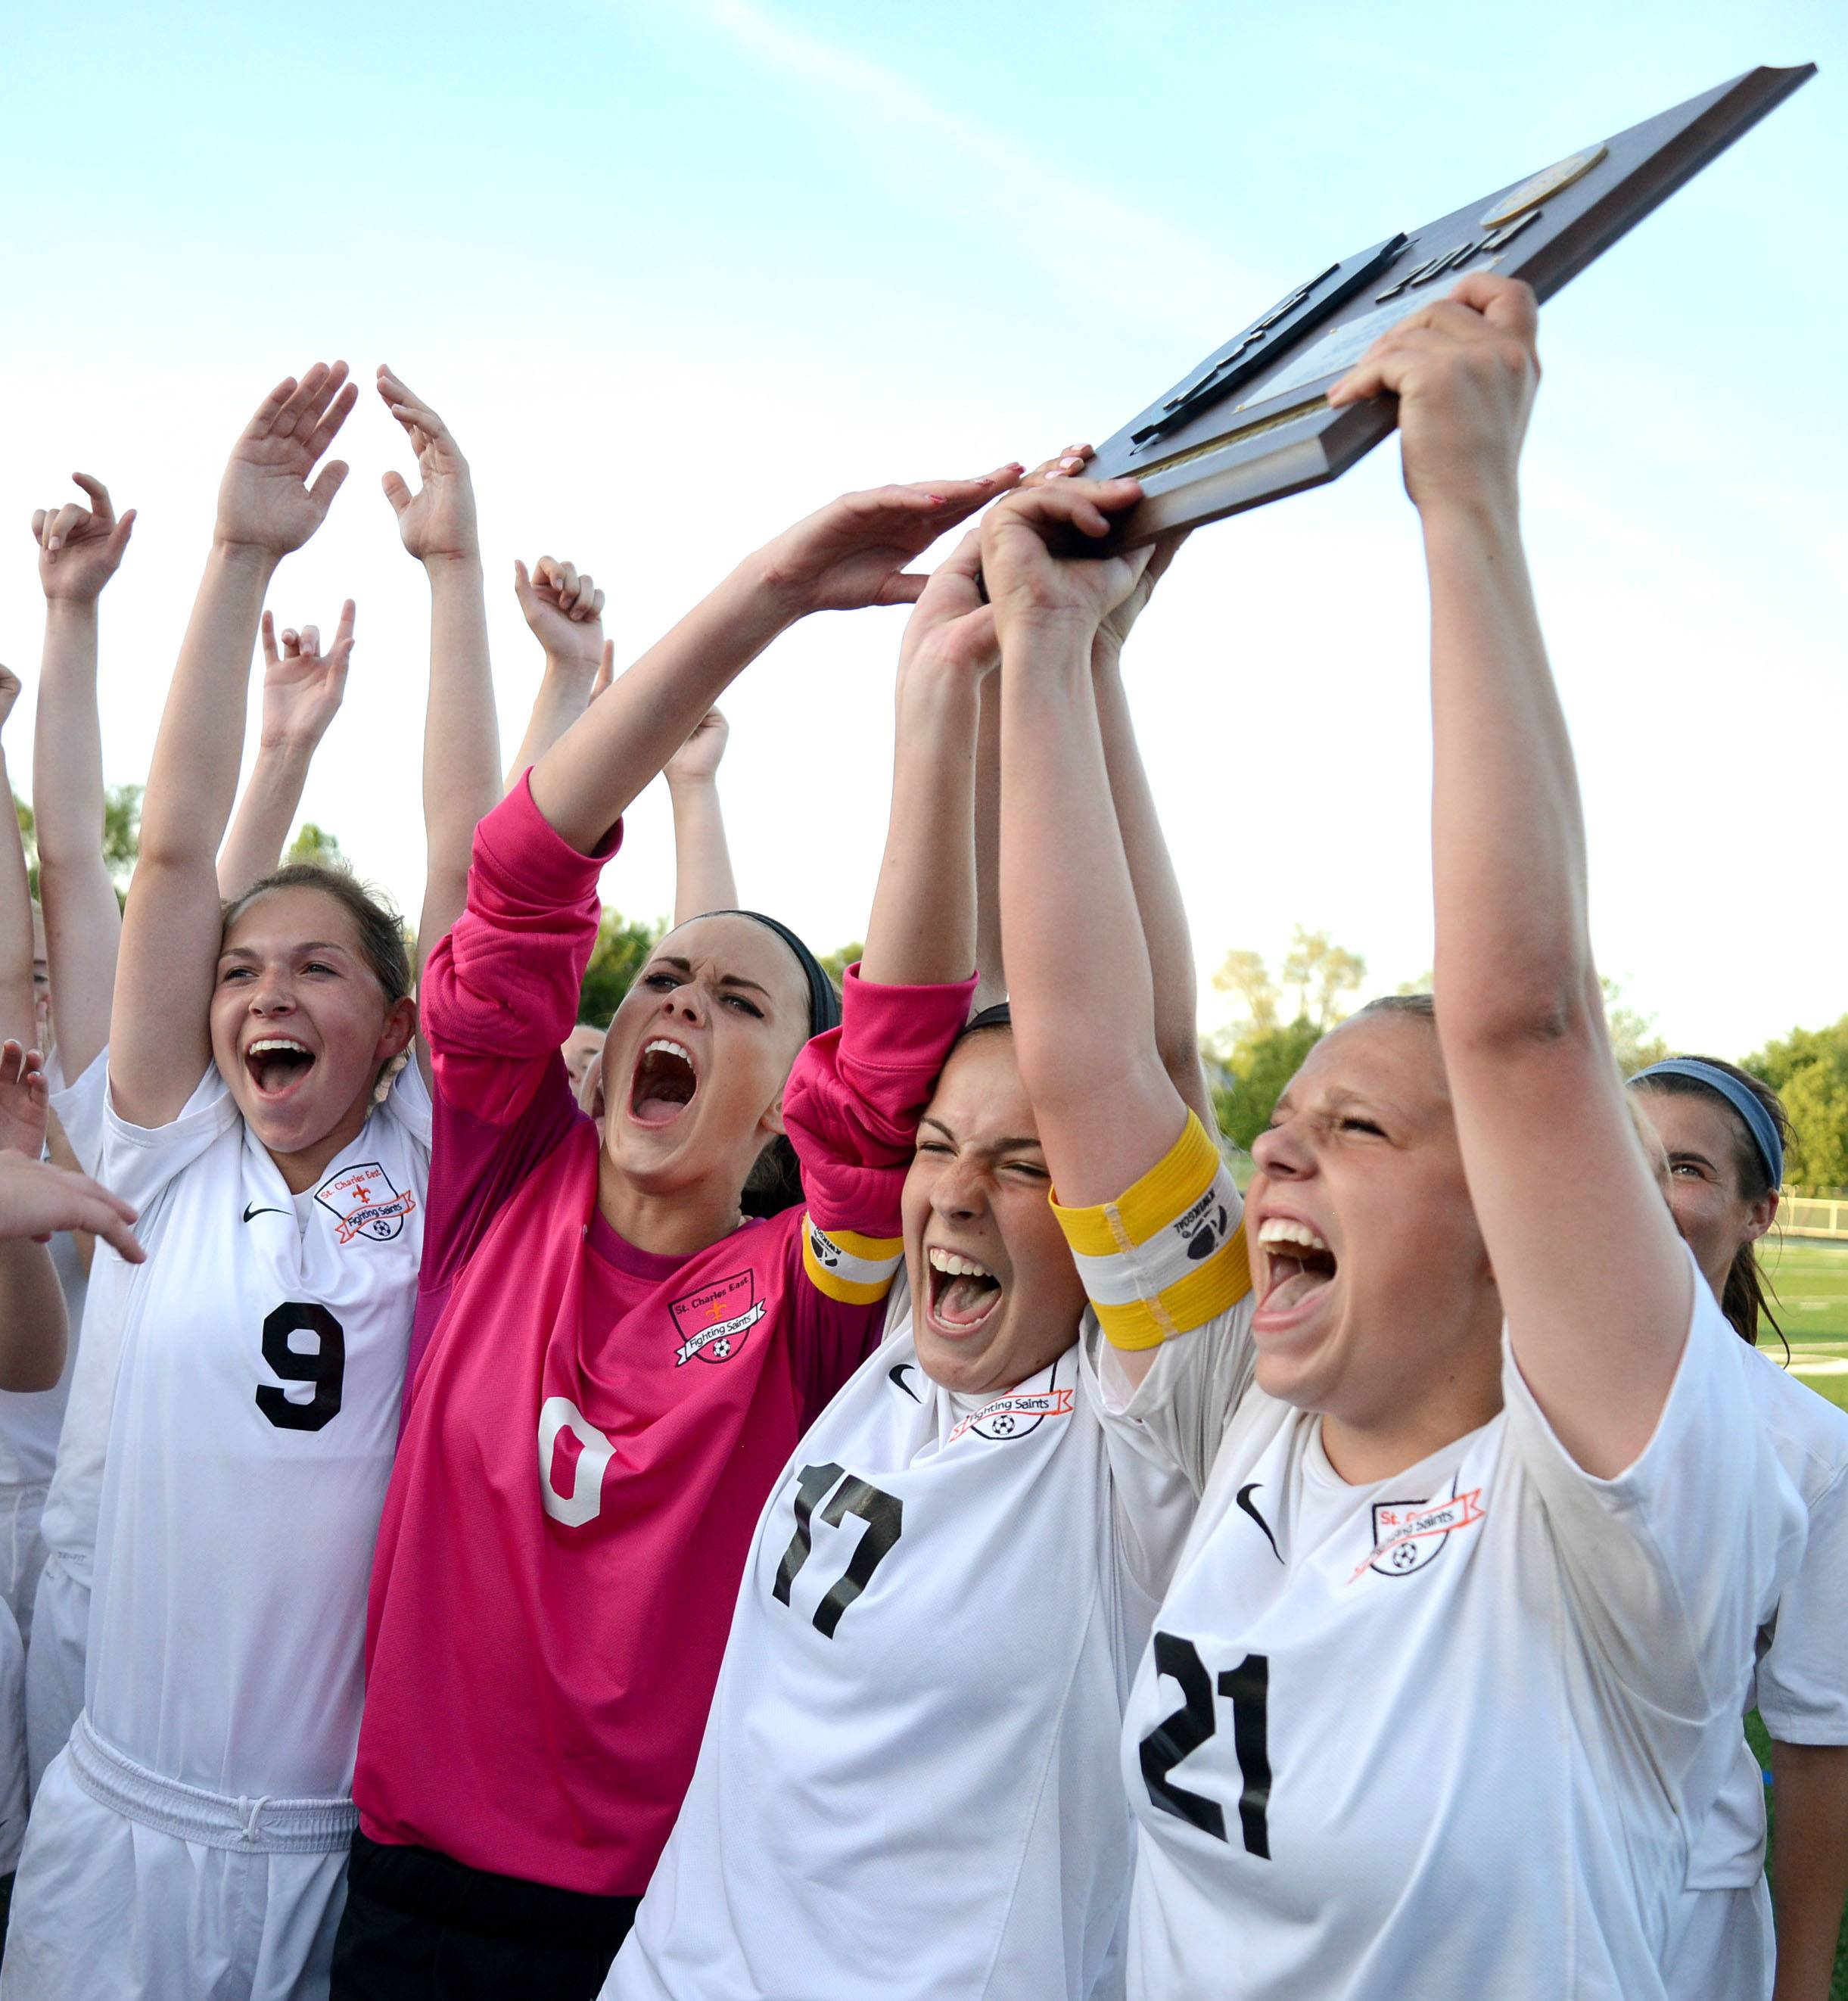 St. Charles East's Darcy Cunningham (9), Kendra Sheehan (0), Anna Corirosi (17) and Amanda Hilton (21) scream as they present their Class 3A girls soccer supersectional plaque to the crowd after their win over Huntley at Lake Park High School in Roselle on Tuesday, June 3.